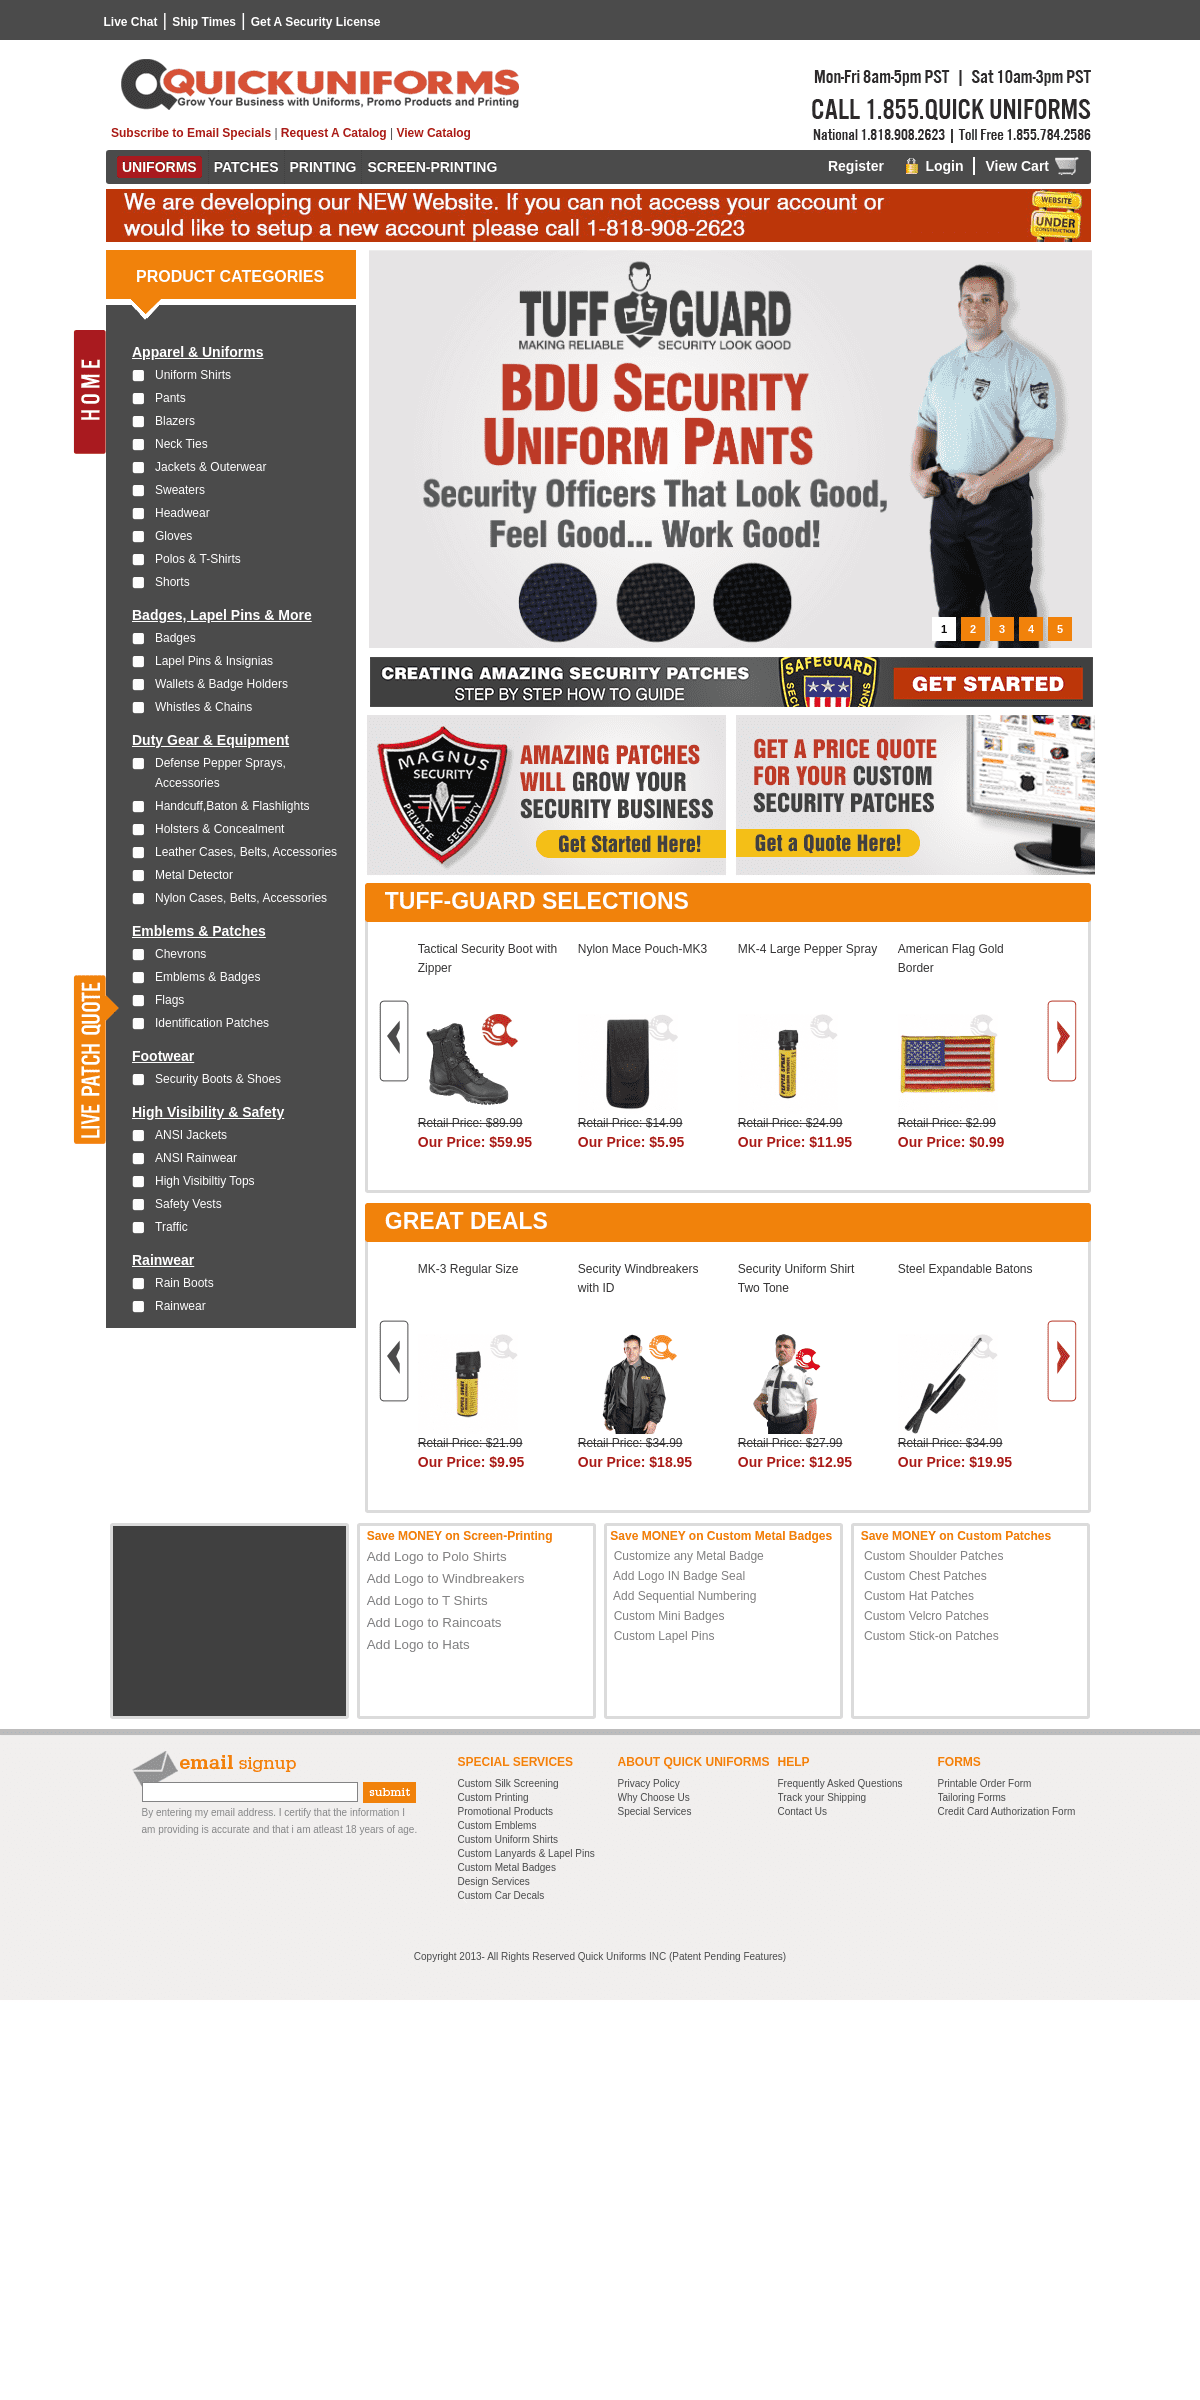 Quick Uniform - Manufacturer of Uniforms, Promo Products and Printing